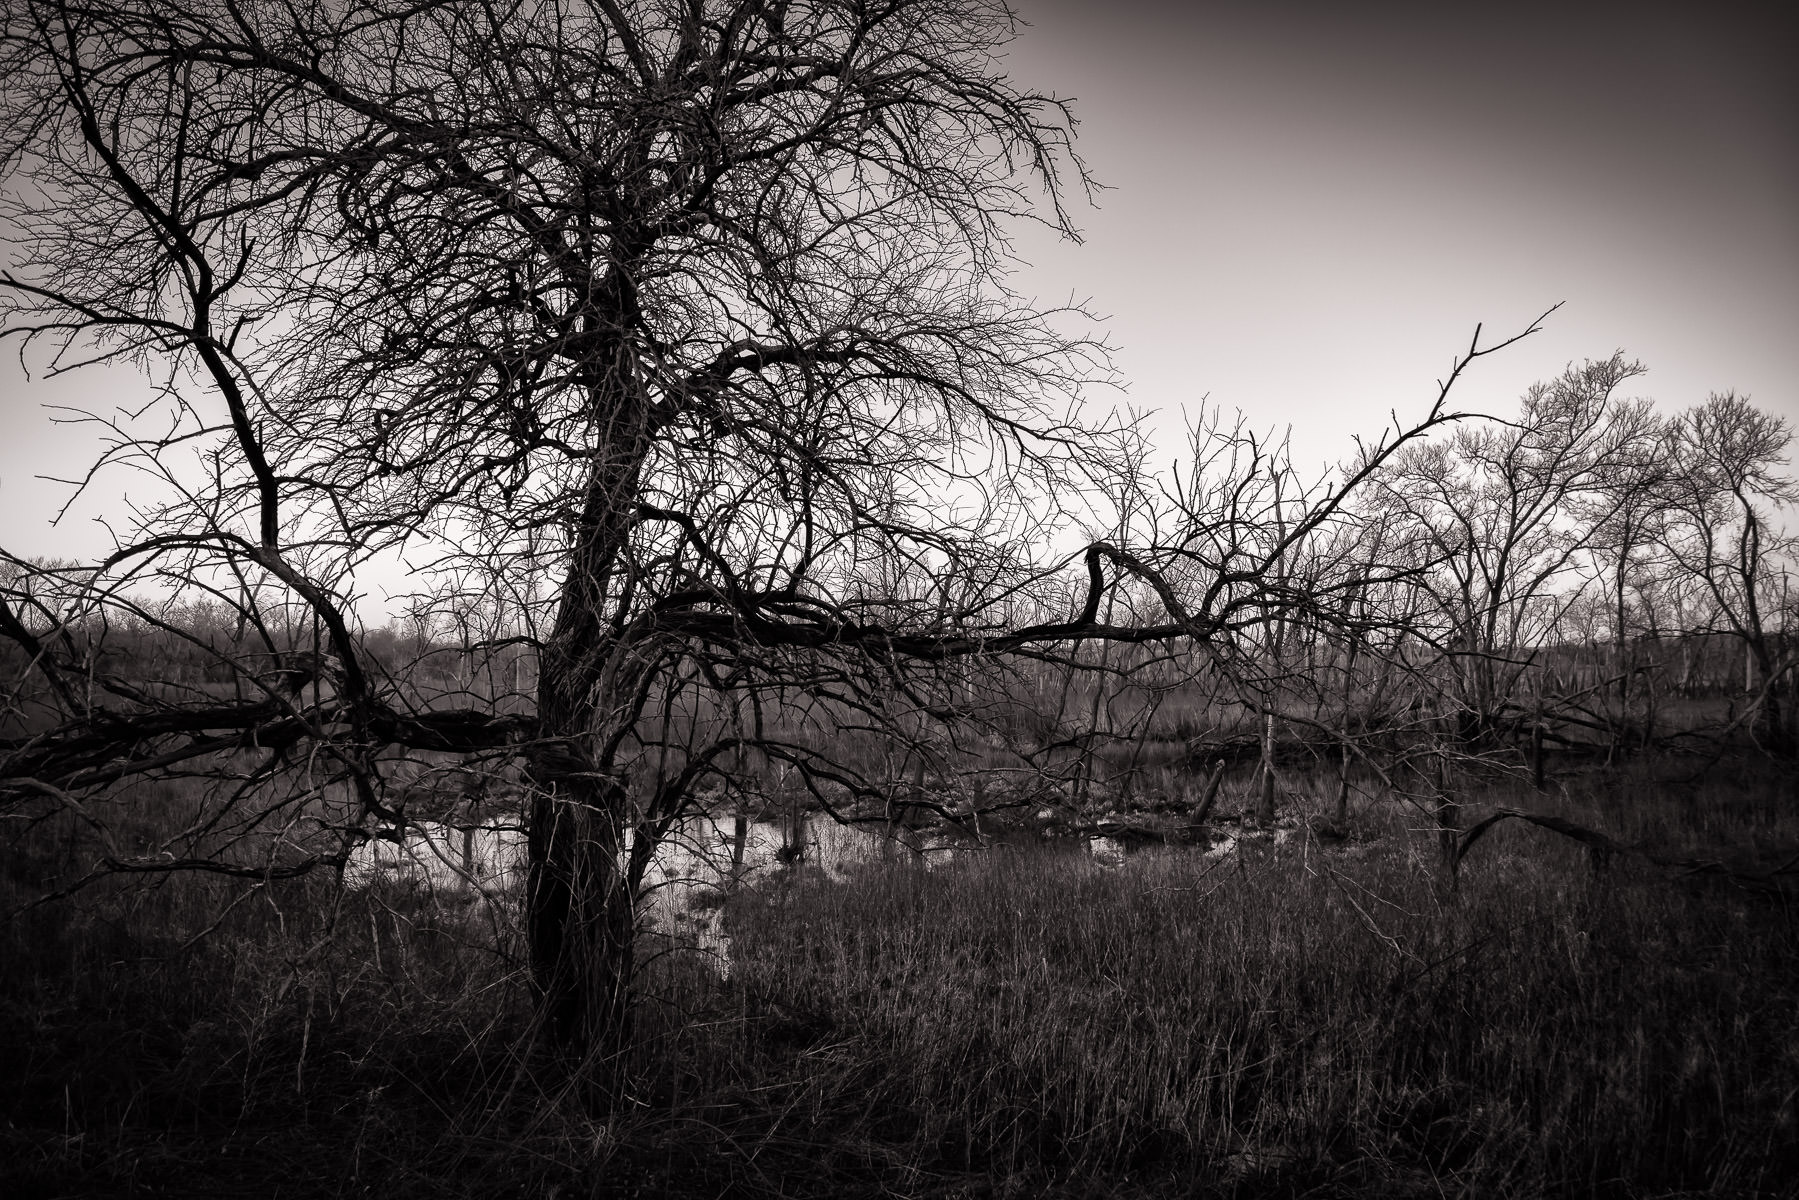 A tree spotted at Texas' Hagerman National Wildlife Refuge.